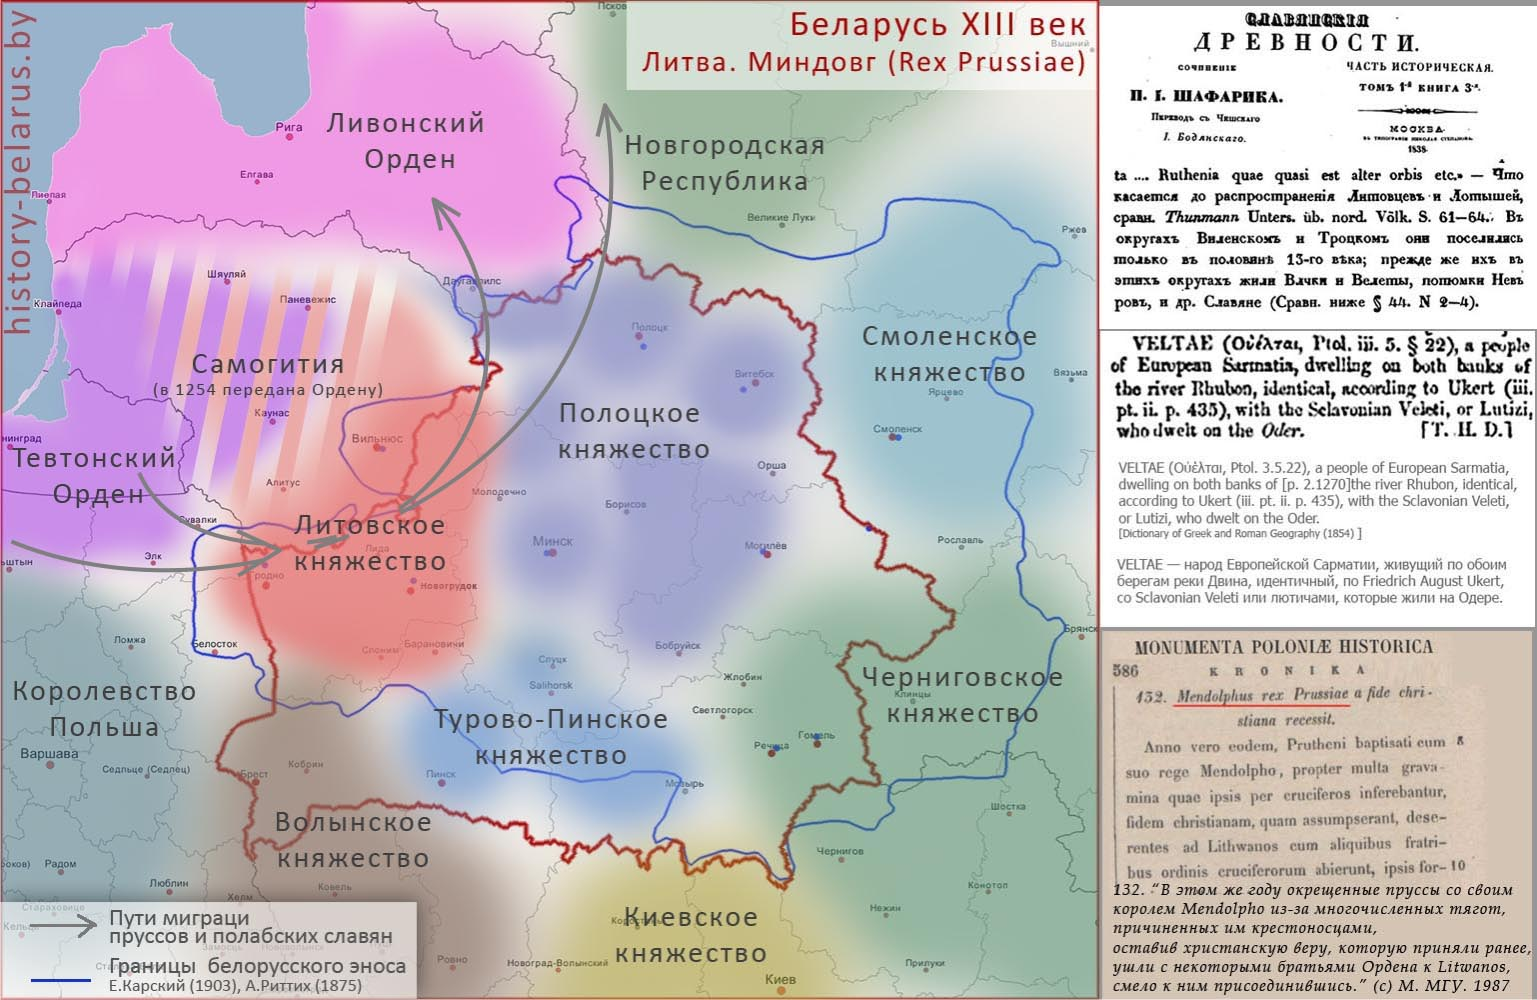 http://history-belarus.by/images/_img-index/blr_13ce_country.jpg